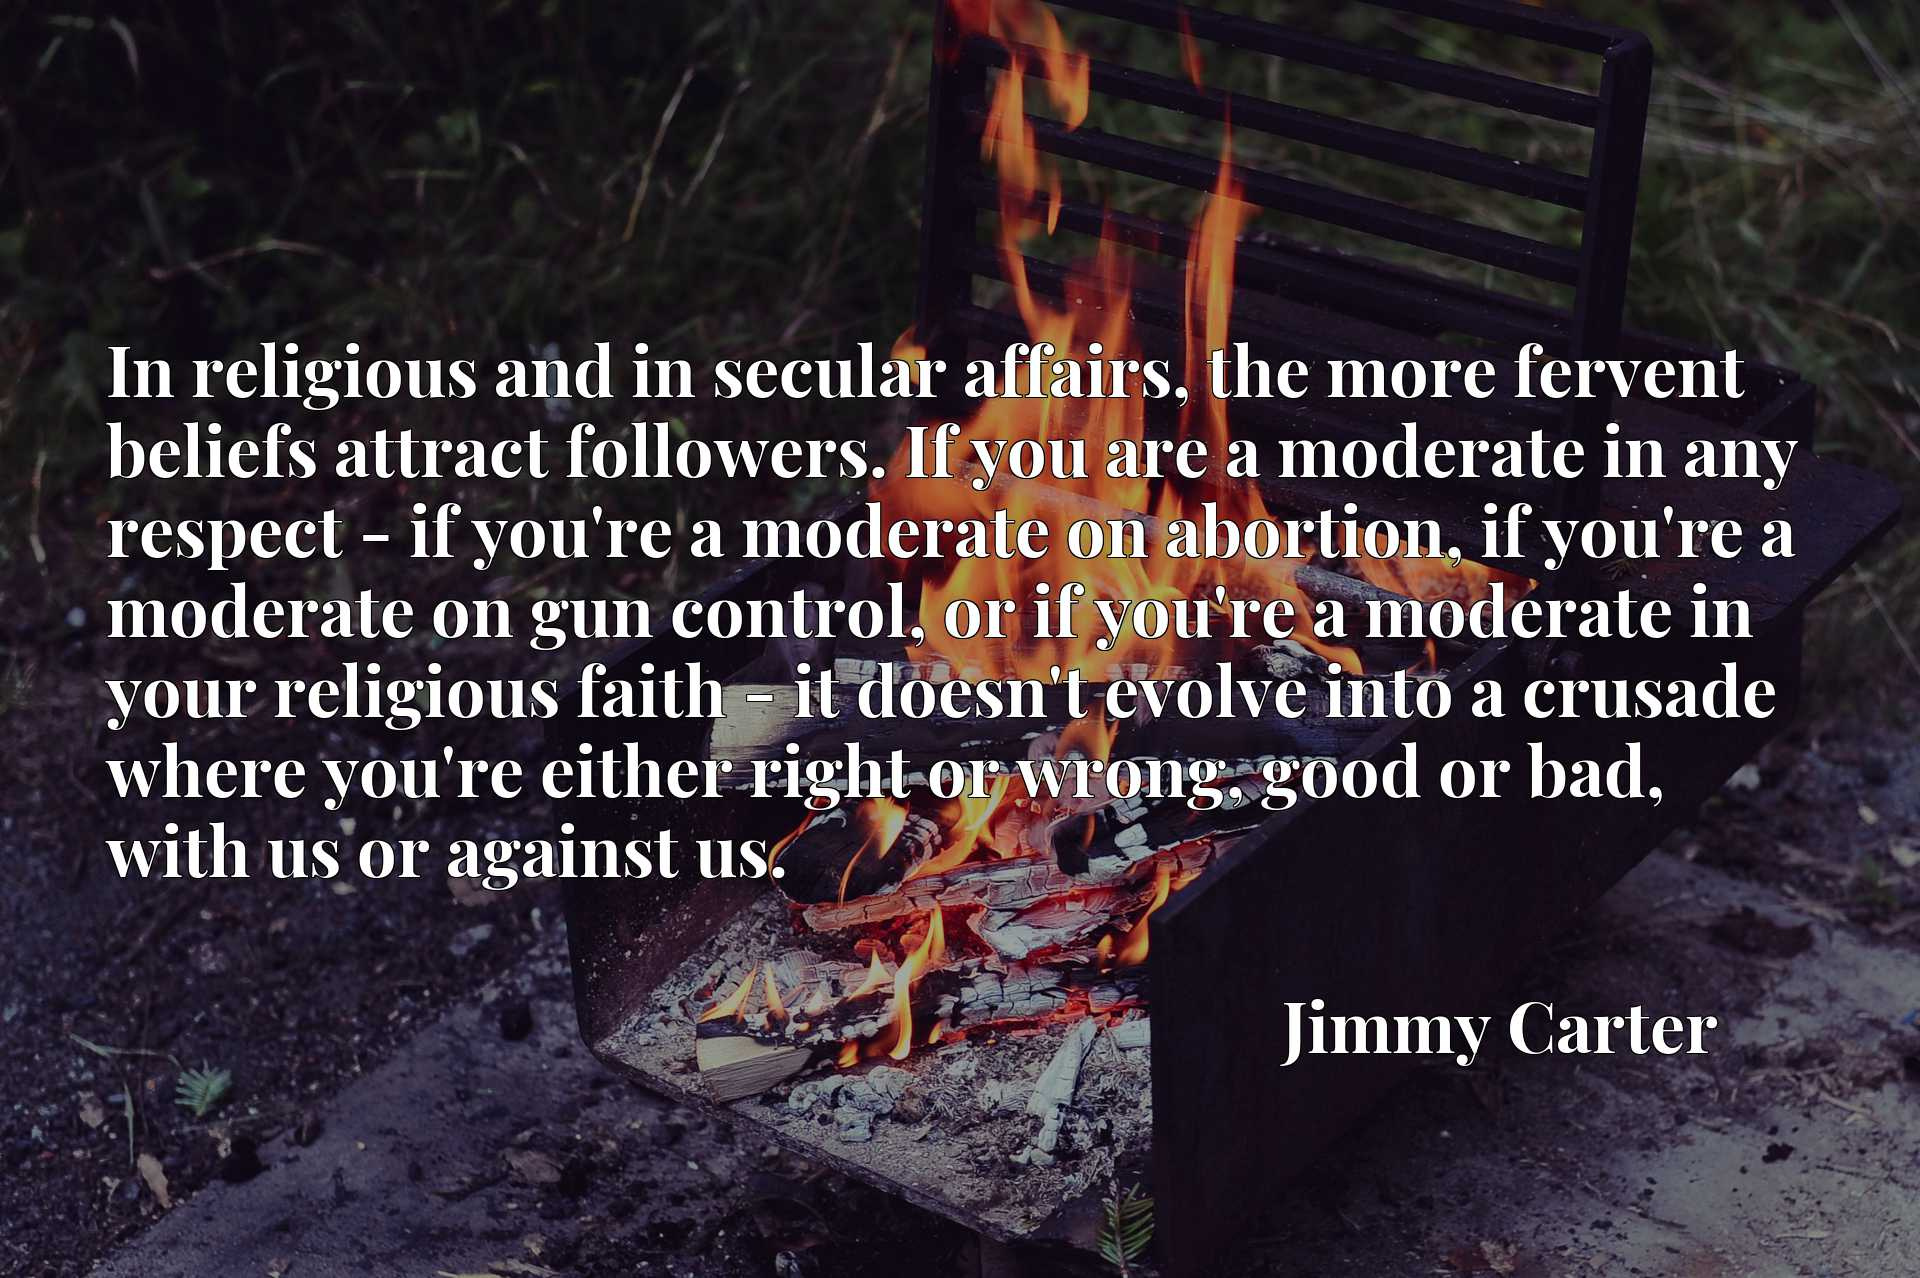 In religious and in secular affairs, the more fervent beliefs attract followers. If you are a moderate in any respect - if you're a moderate on abortion, if you're a moderate on gun control, or if you're a moderate in your religious faith - it doesn't evolve into a crusade where you're either right or wrong, good or bad, with us or against us.